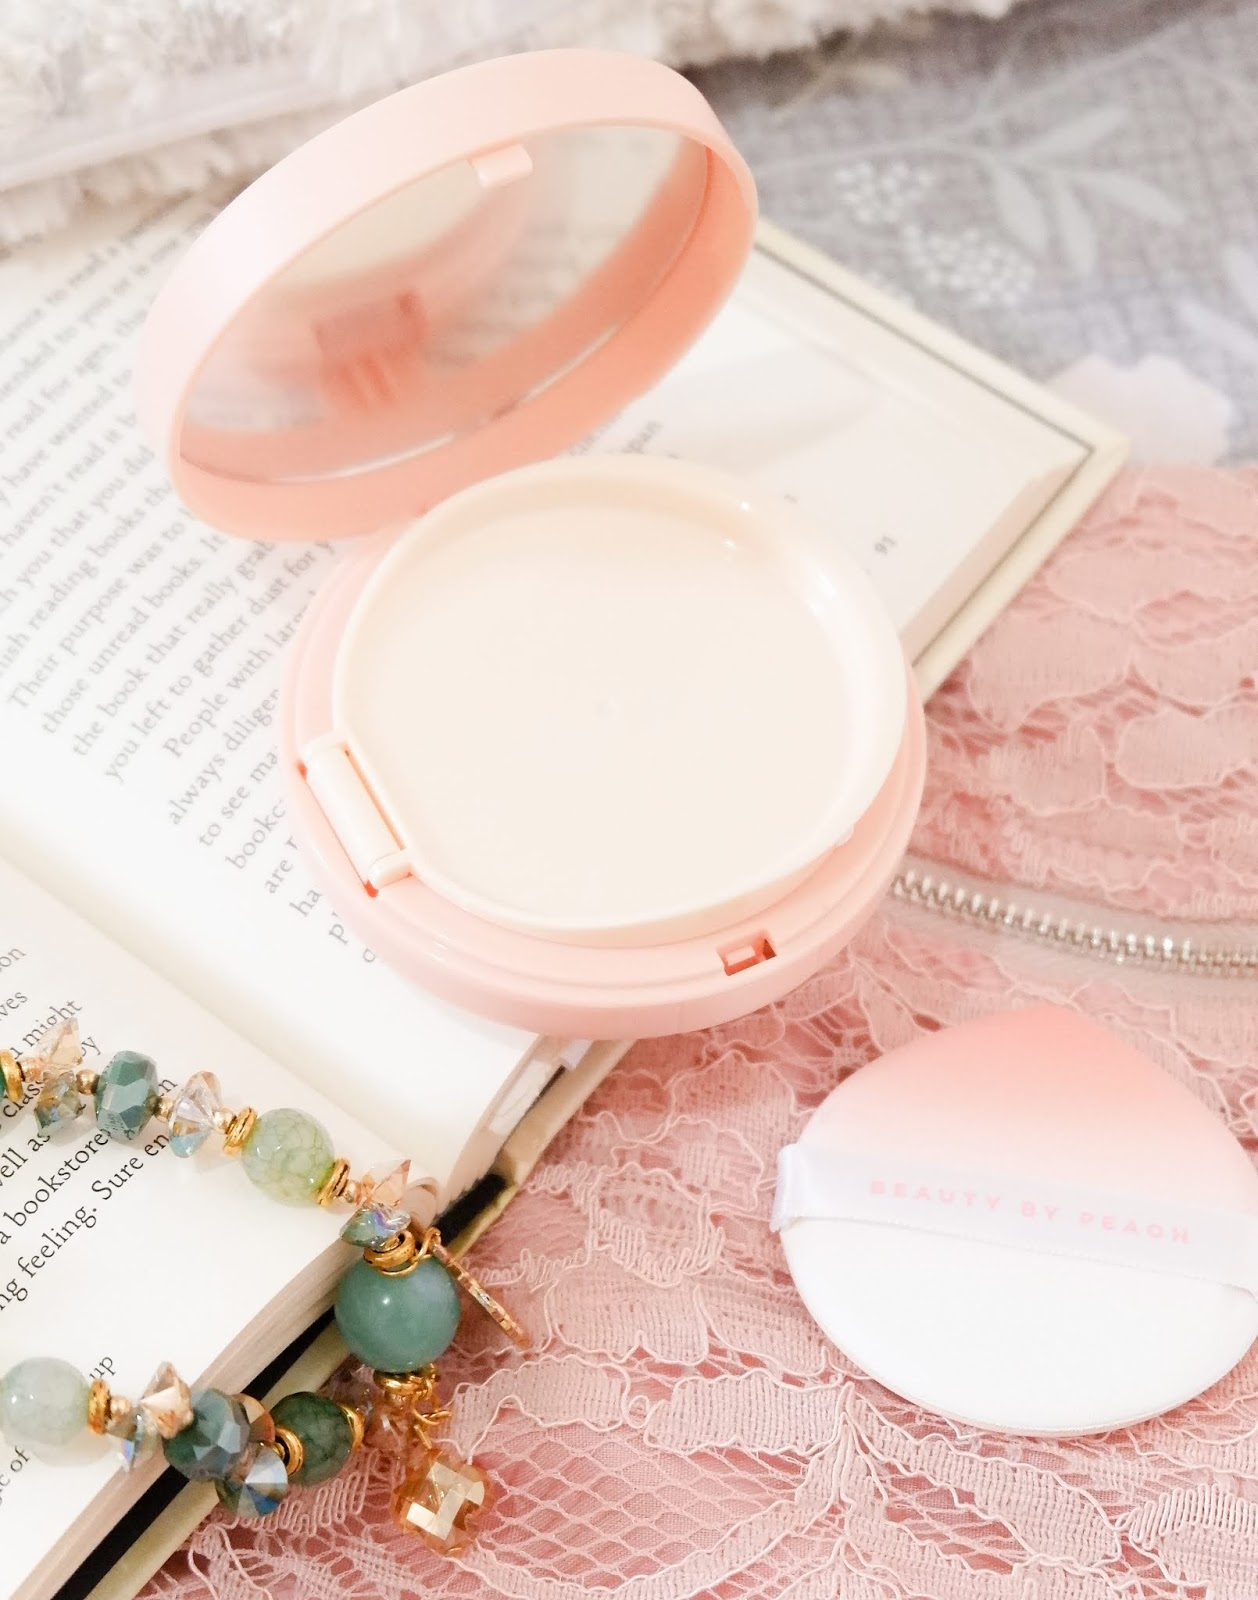 BEAUTY BY PEACH HONEY GLOW COVER CUSHION REVIEW